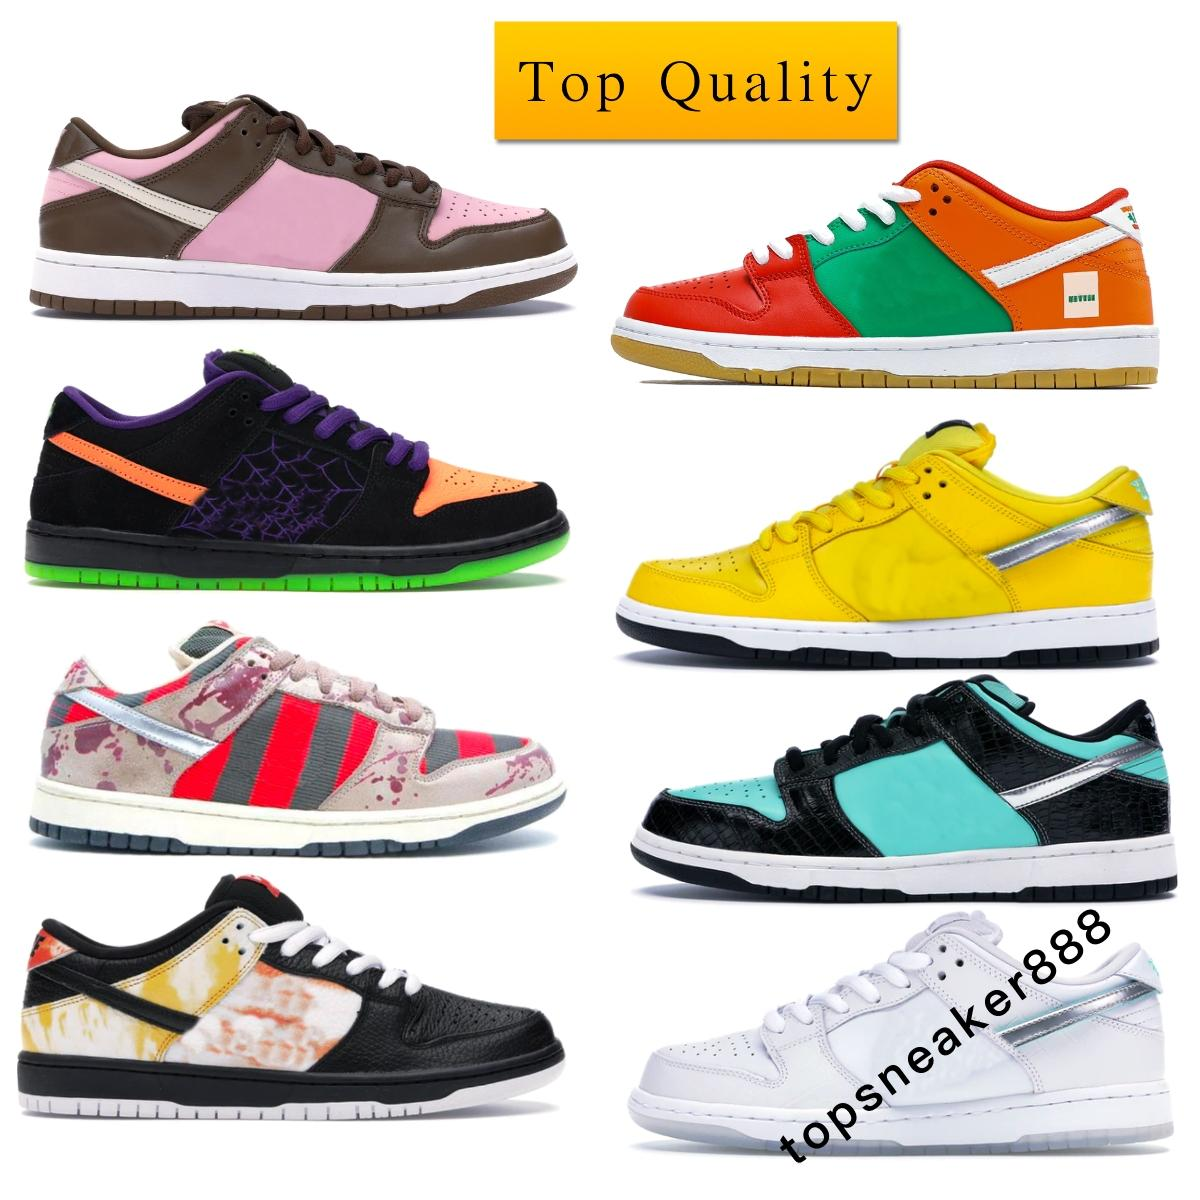 SB Dunk Low Diamond Supply Co White Diamond Stussy Cherry Man Designer Shoes Women Sneaker Sport 7 Eleven Noir Cancry avec la boîte Taille 36-45